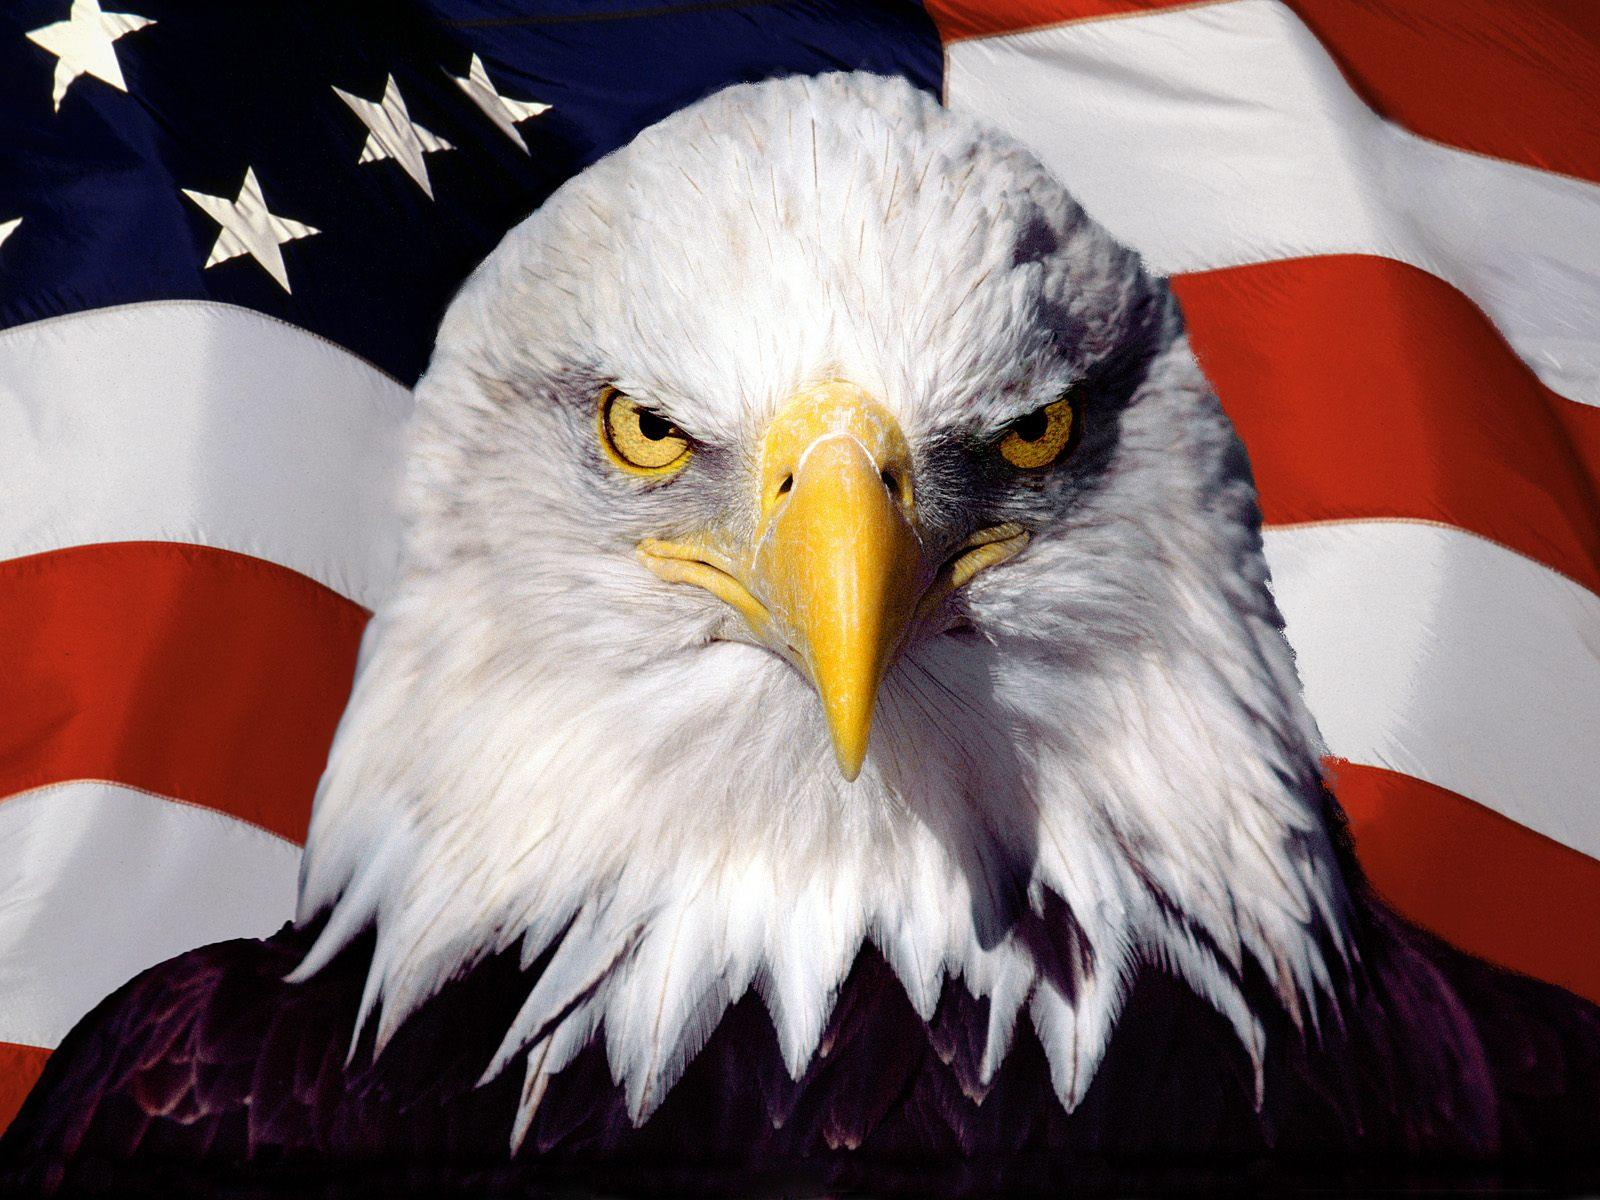 Patriotic Eagle Wallpapers Top Free Patriotic Eagle Backgrounds Wallpaperaccess